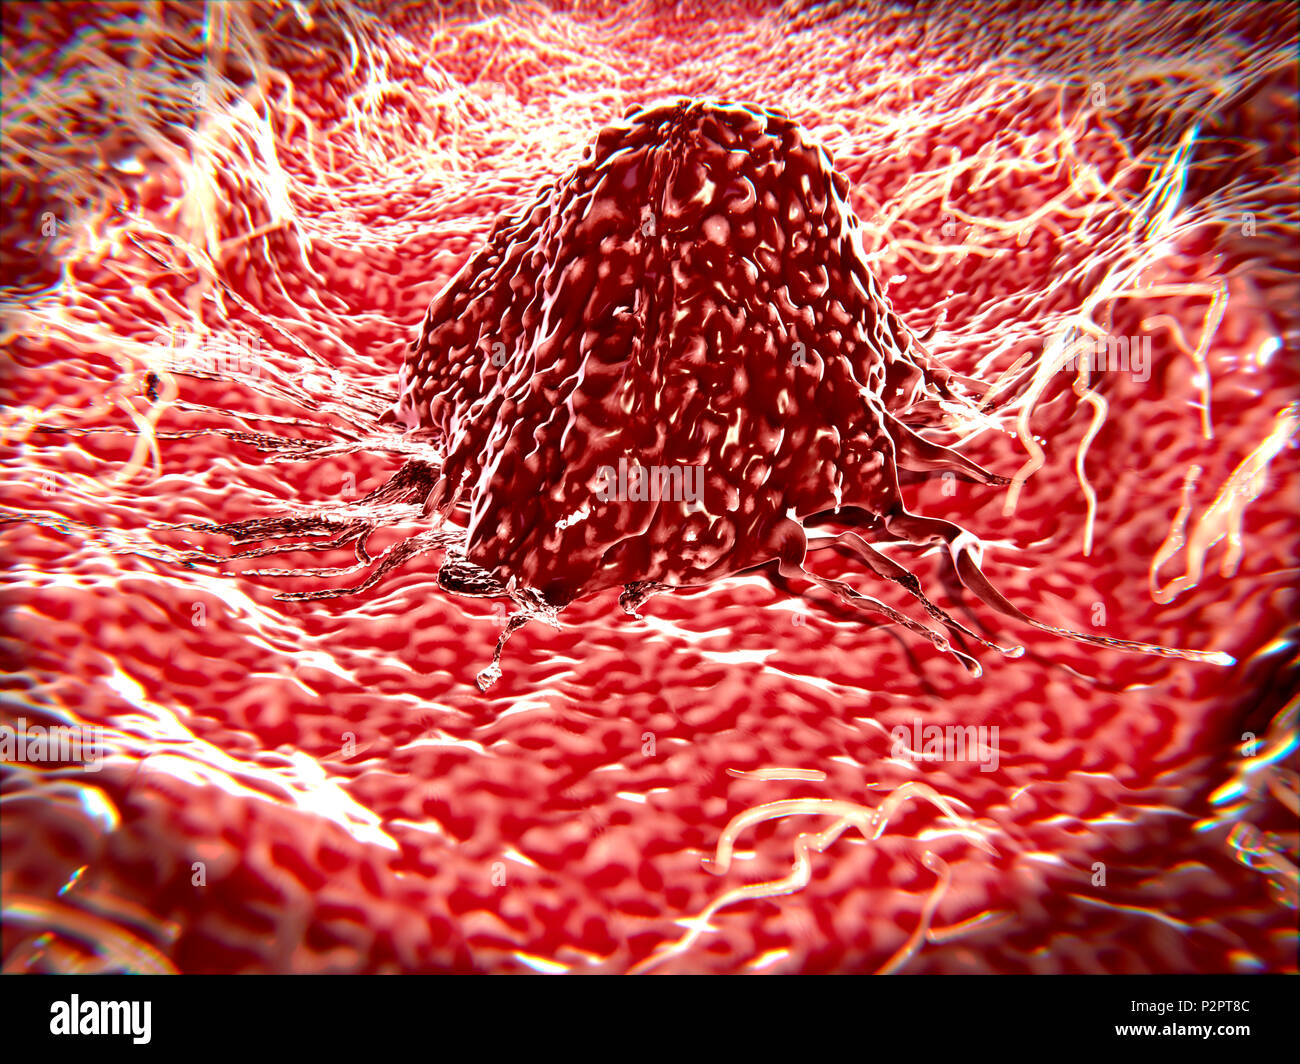 Lymphatic Cells Stock Photos Lymphatic Cells Stock Images Alamy